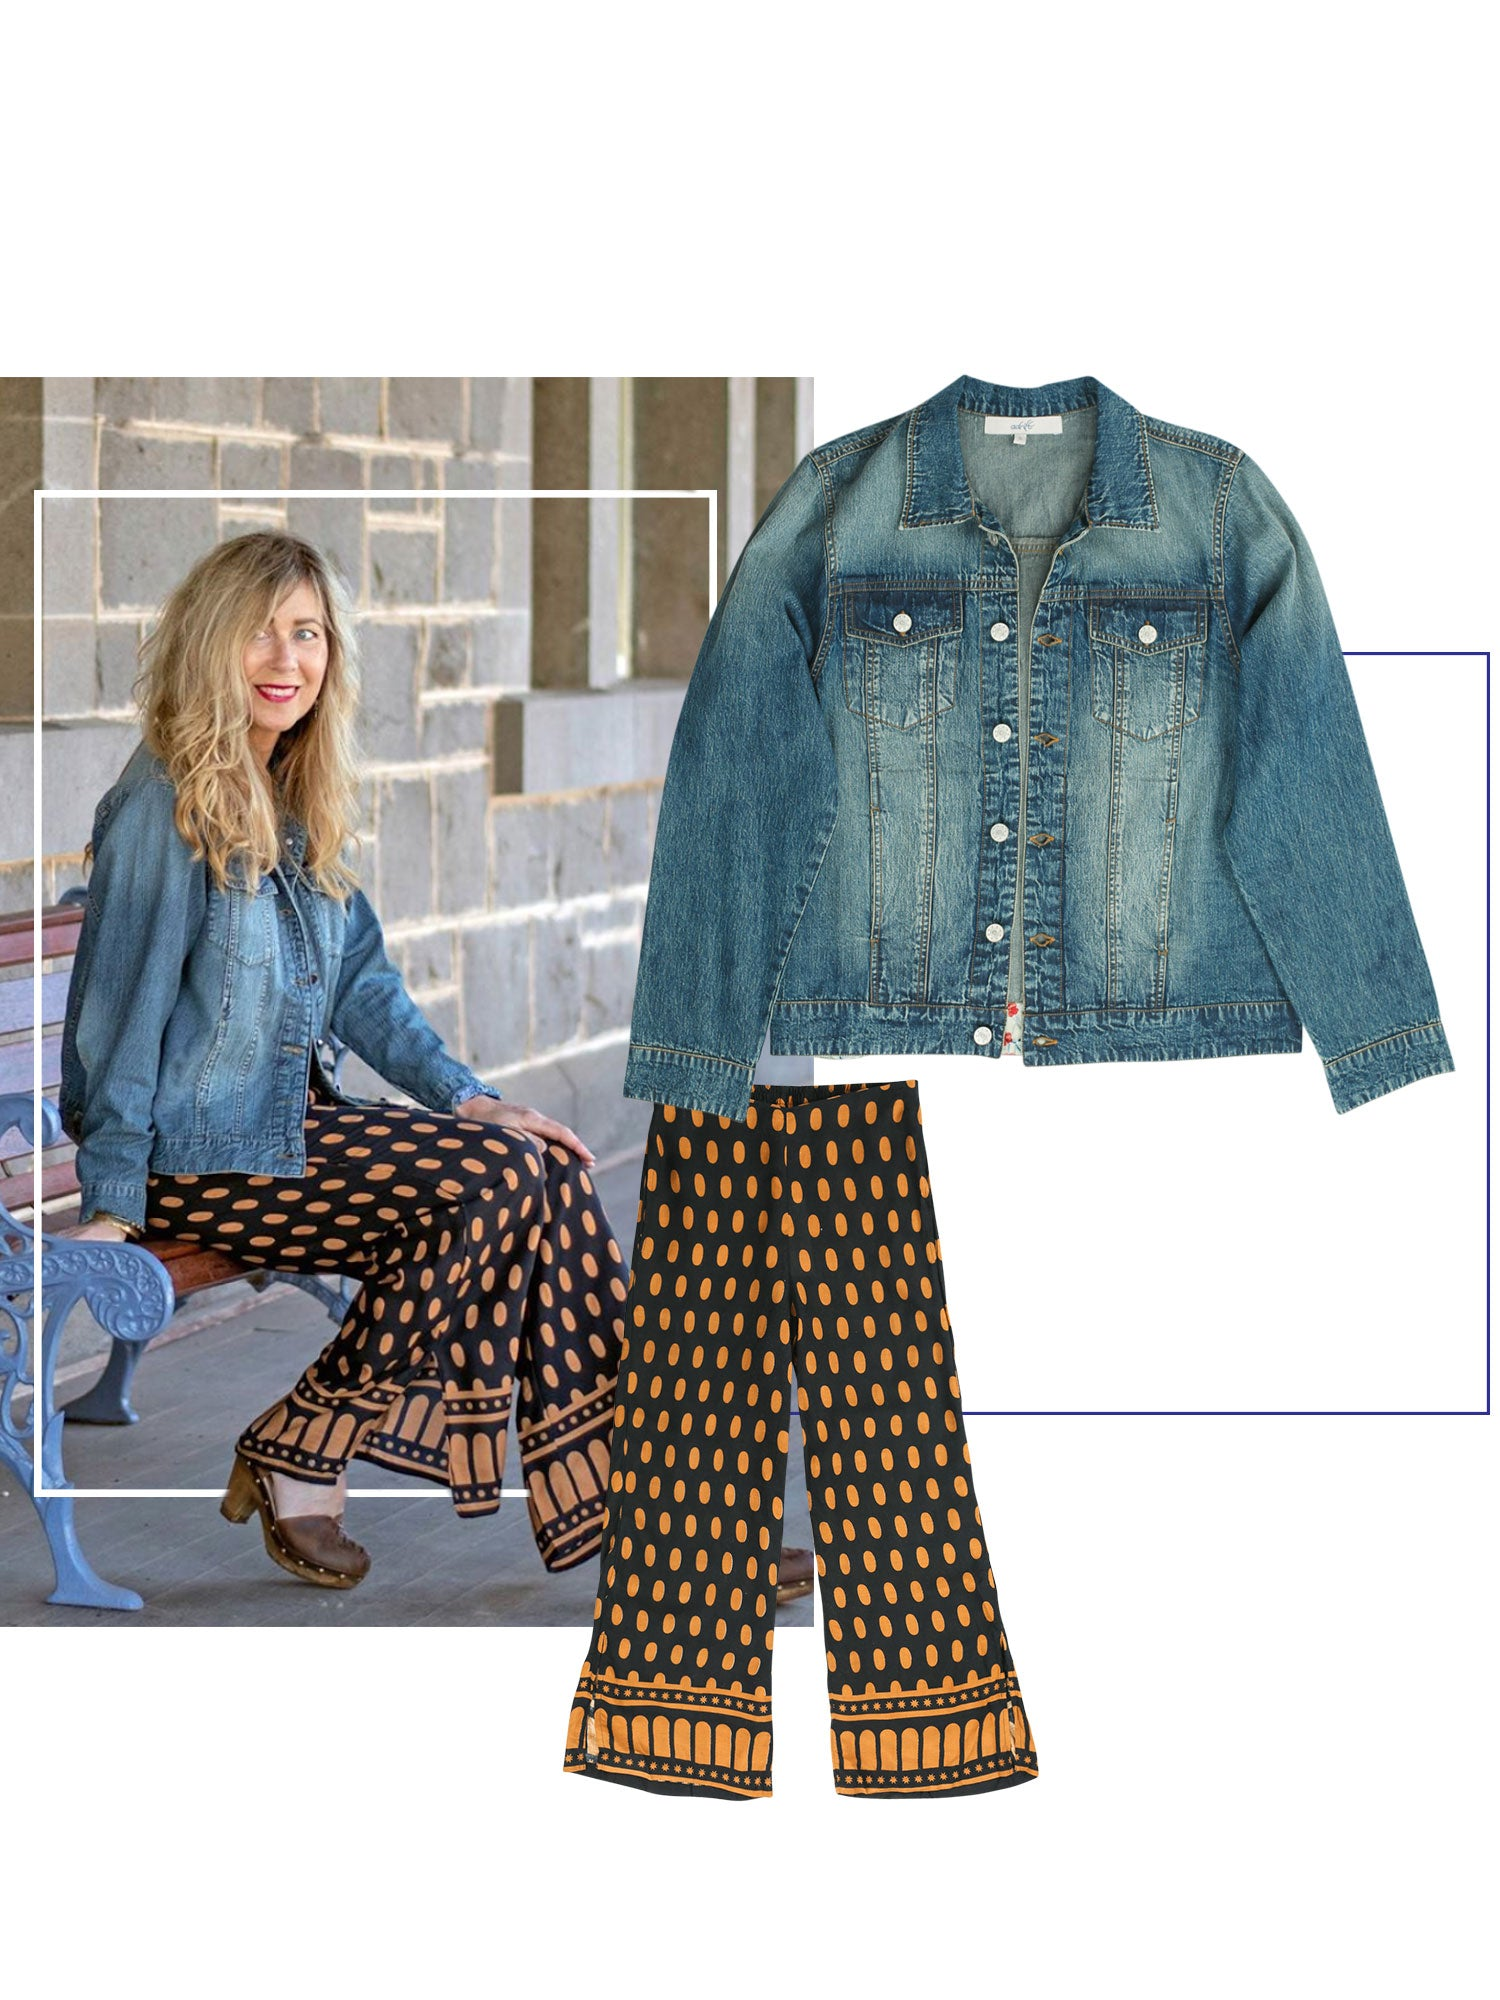 Suzie blogger wearing Adrift dot star pants with denim jacket combo.